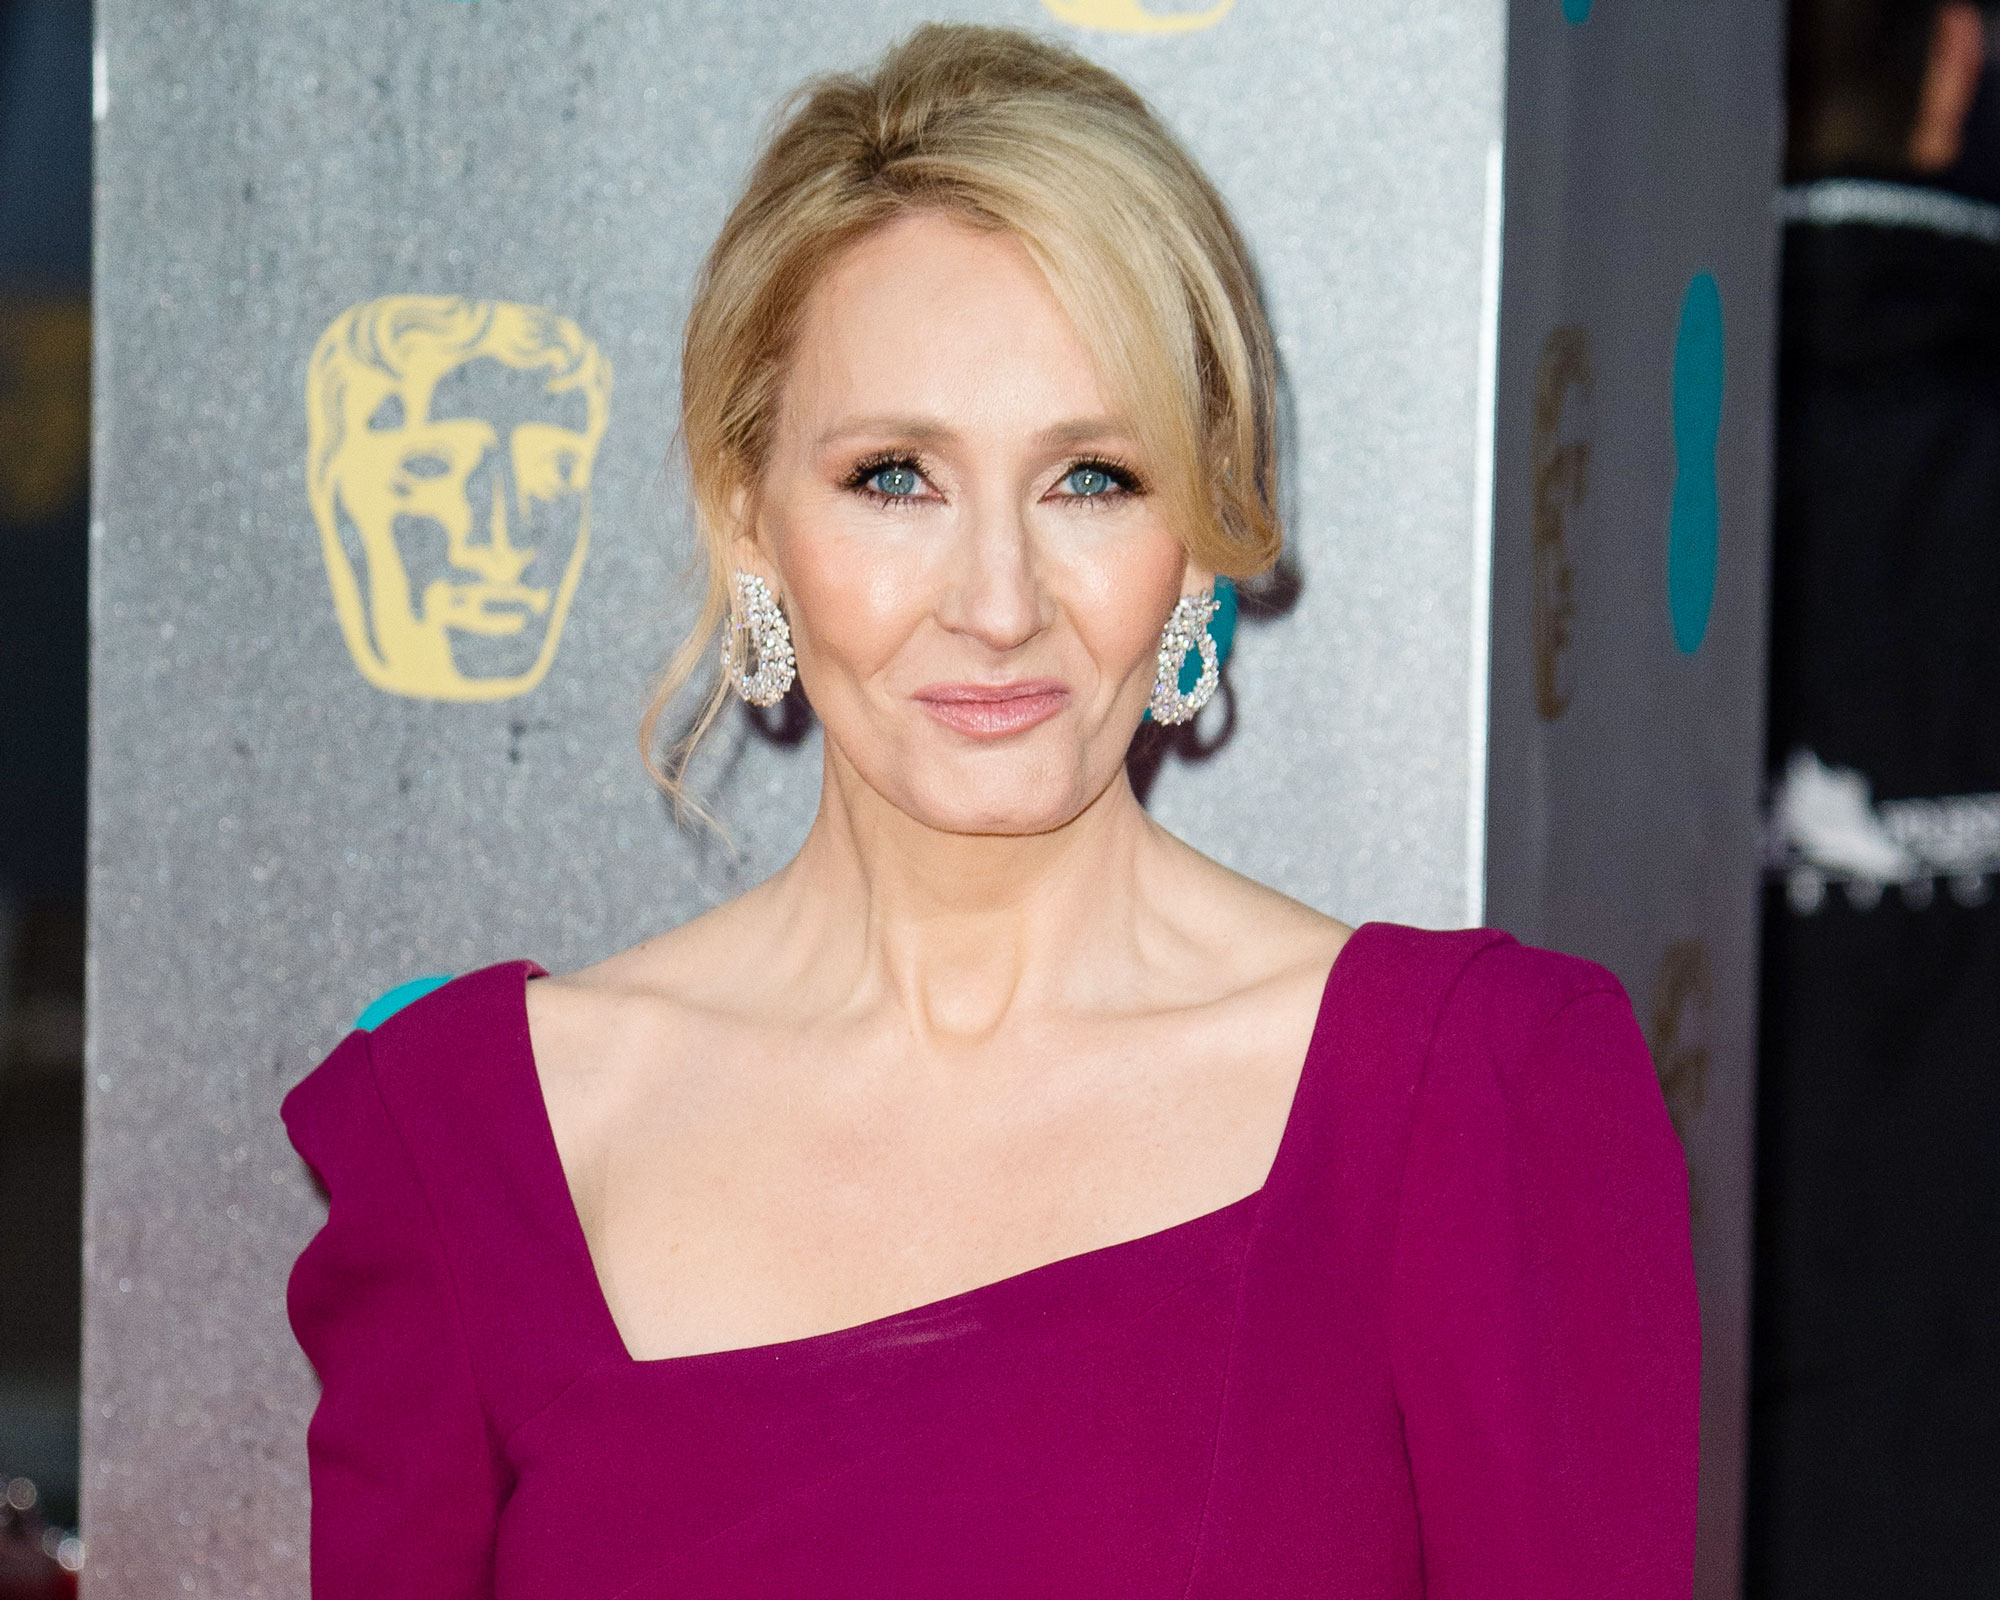 J.K. Rowling Reacts to Backlash Over Whether <em>Fantastic Beasts</em> Will Portray Dumbledore as Openly Gay